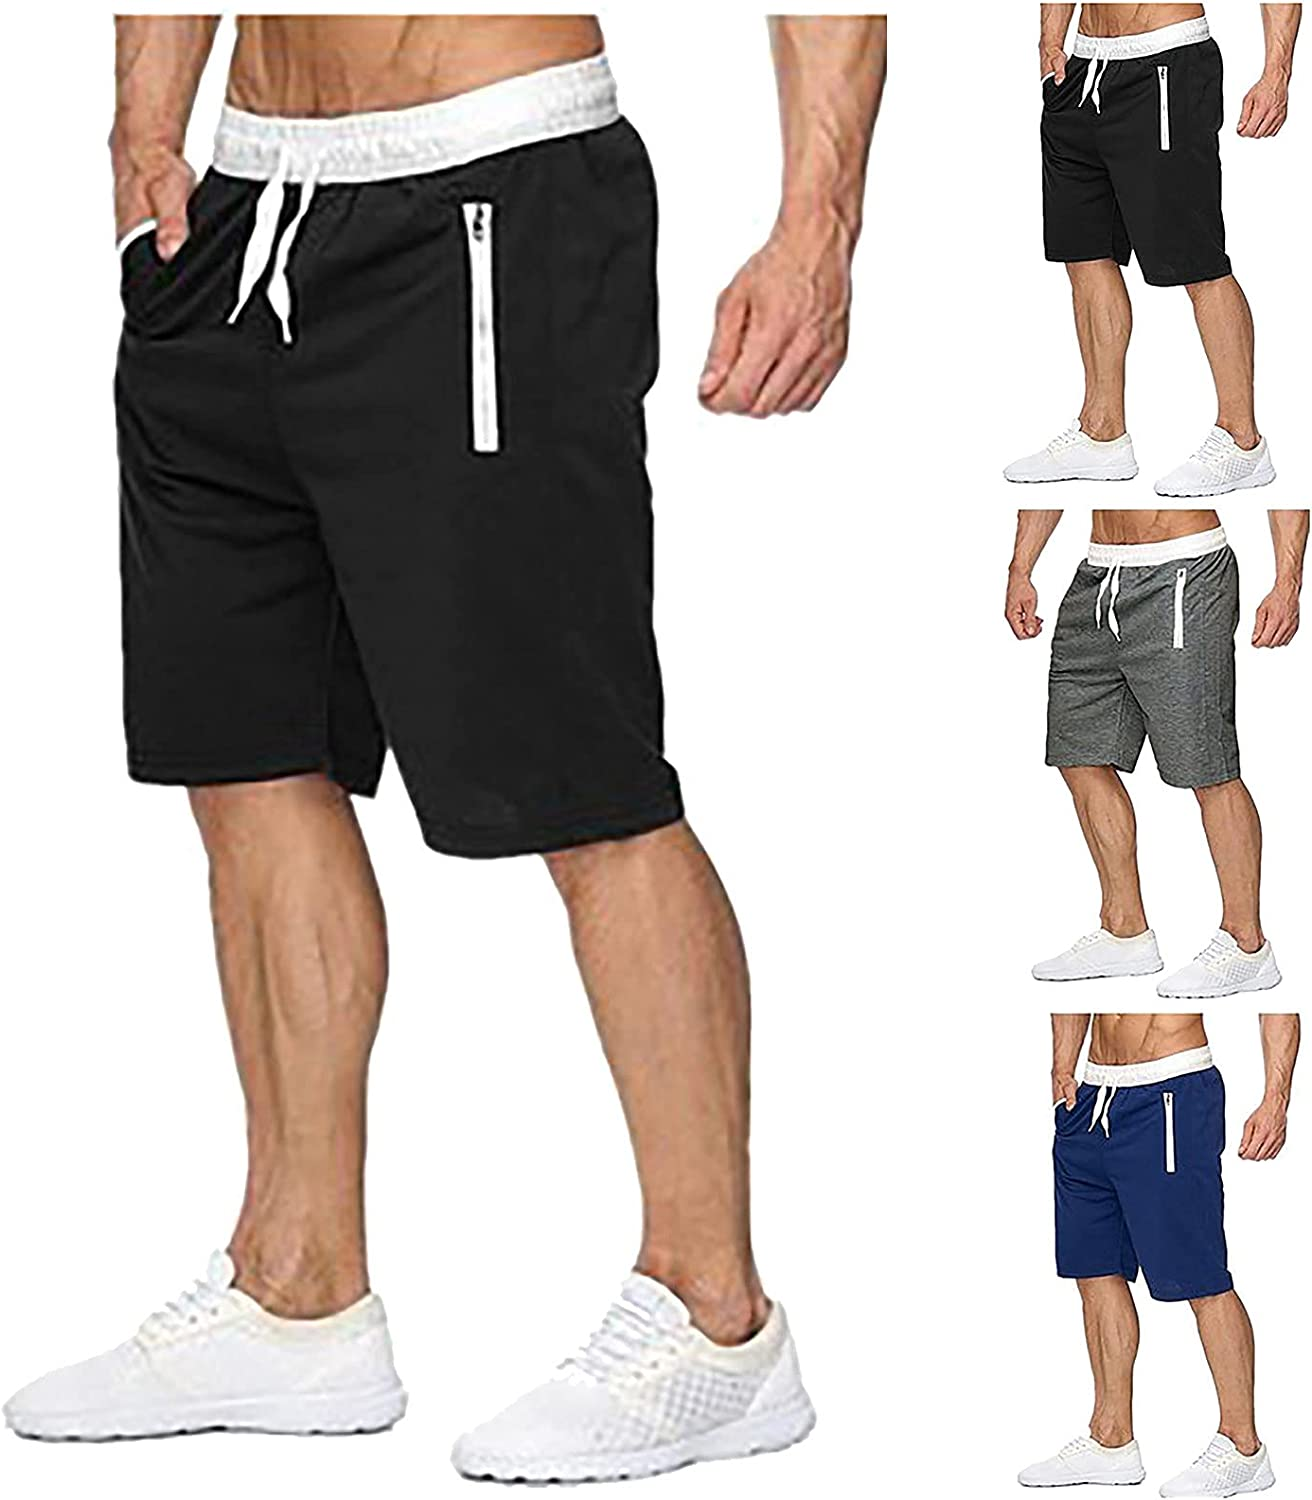 Maryia Mens Summer Solid Casual Holiday Beach Drawstring Shorts Classic Fit Workout Sports Quick Dry Cool Pants